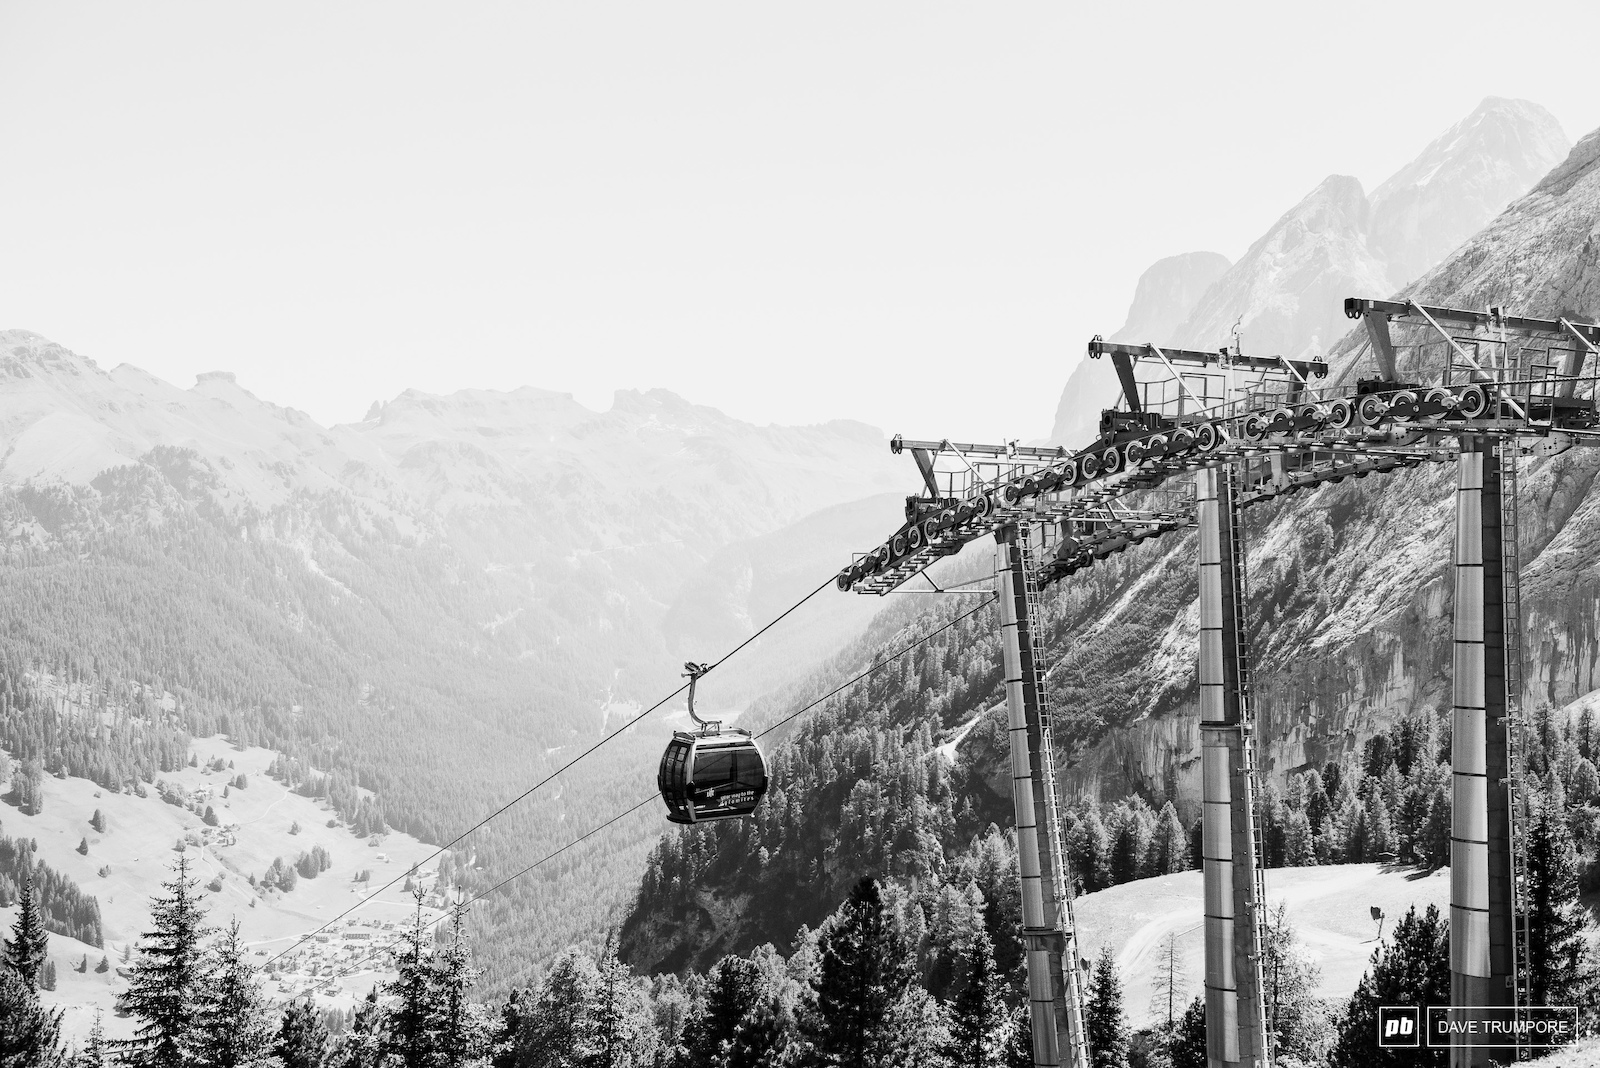 The EWS will be the first time bikes have been allowed up this particular gondola and the trails below are as fresh as it gets.